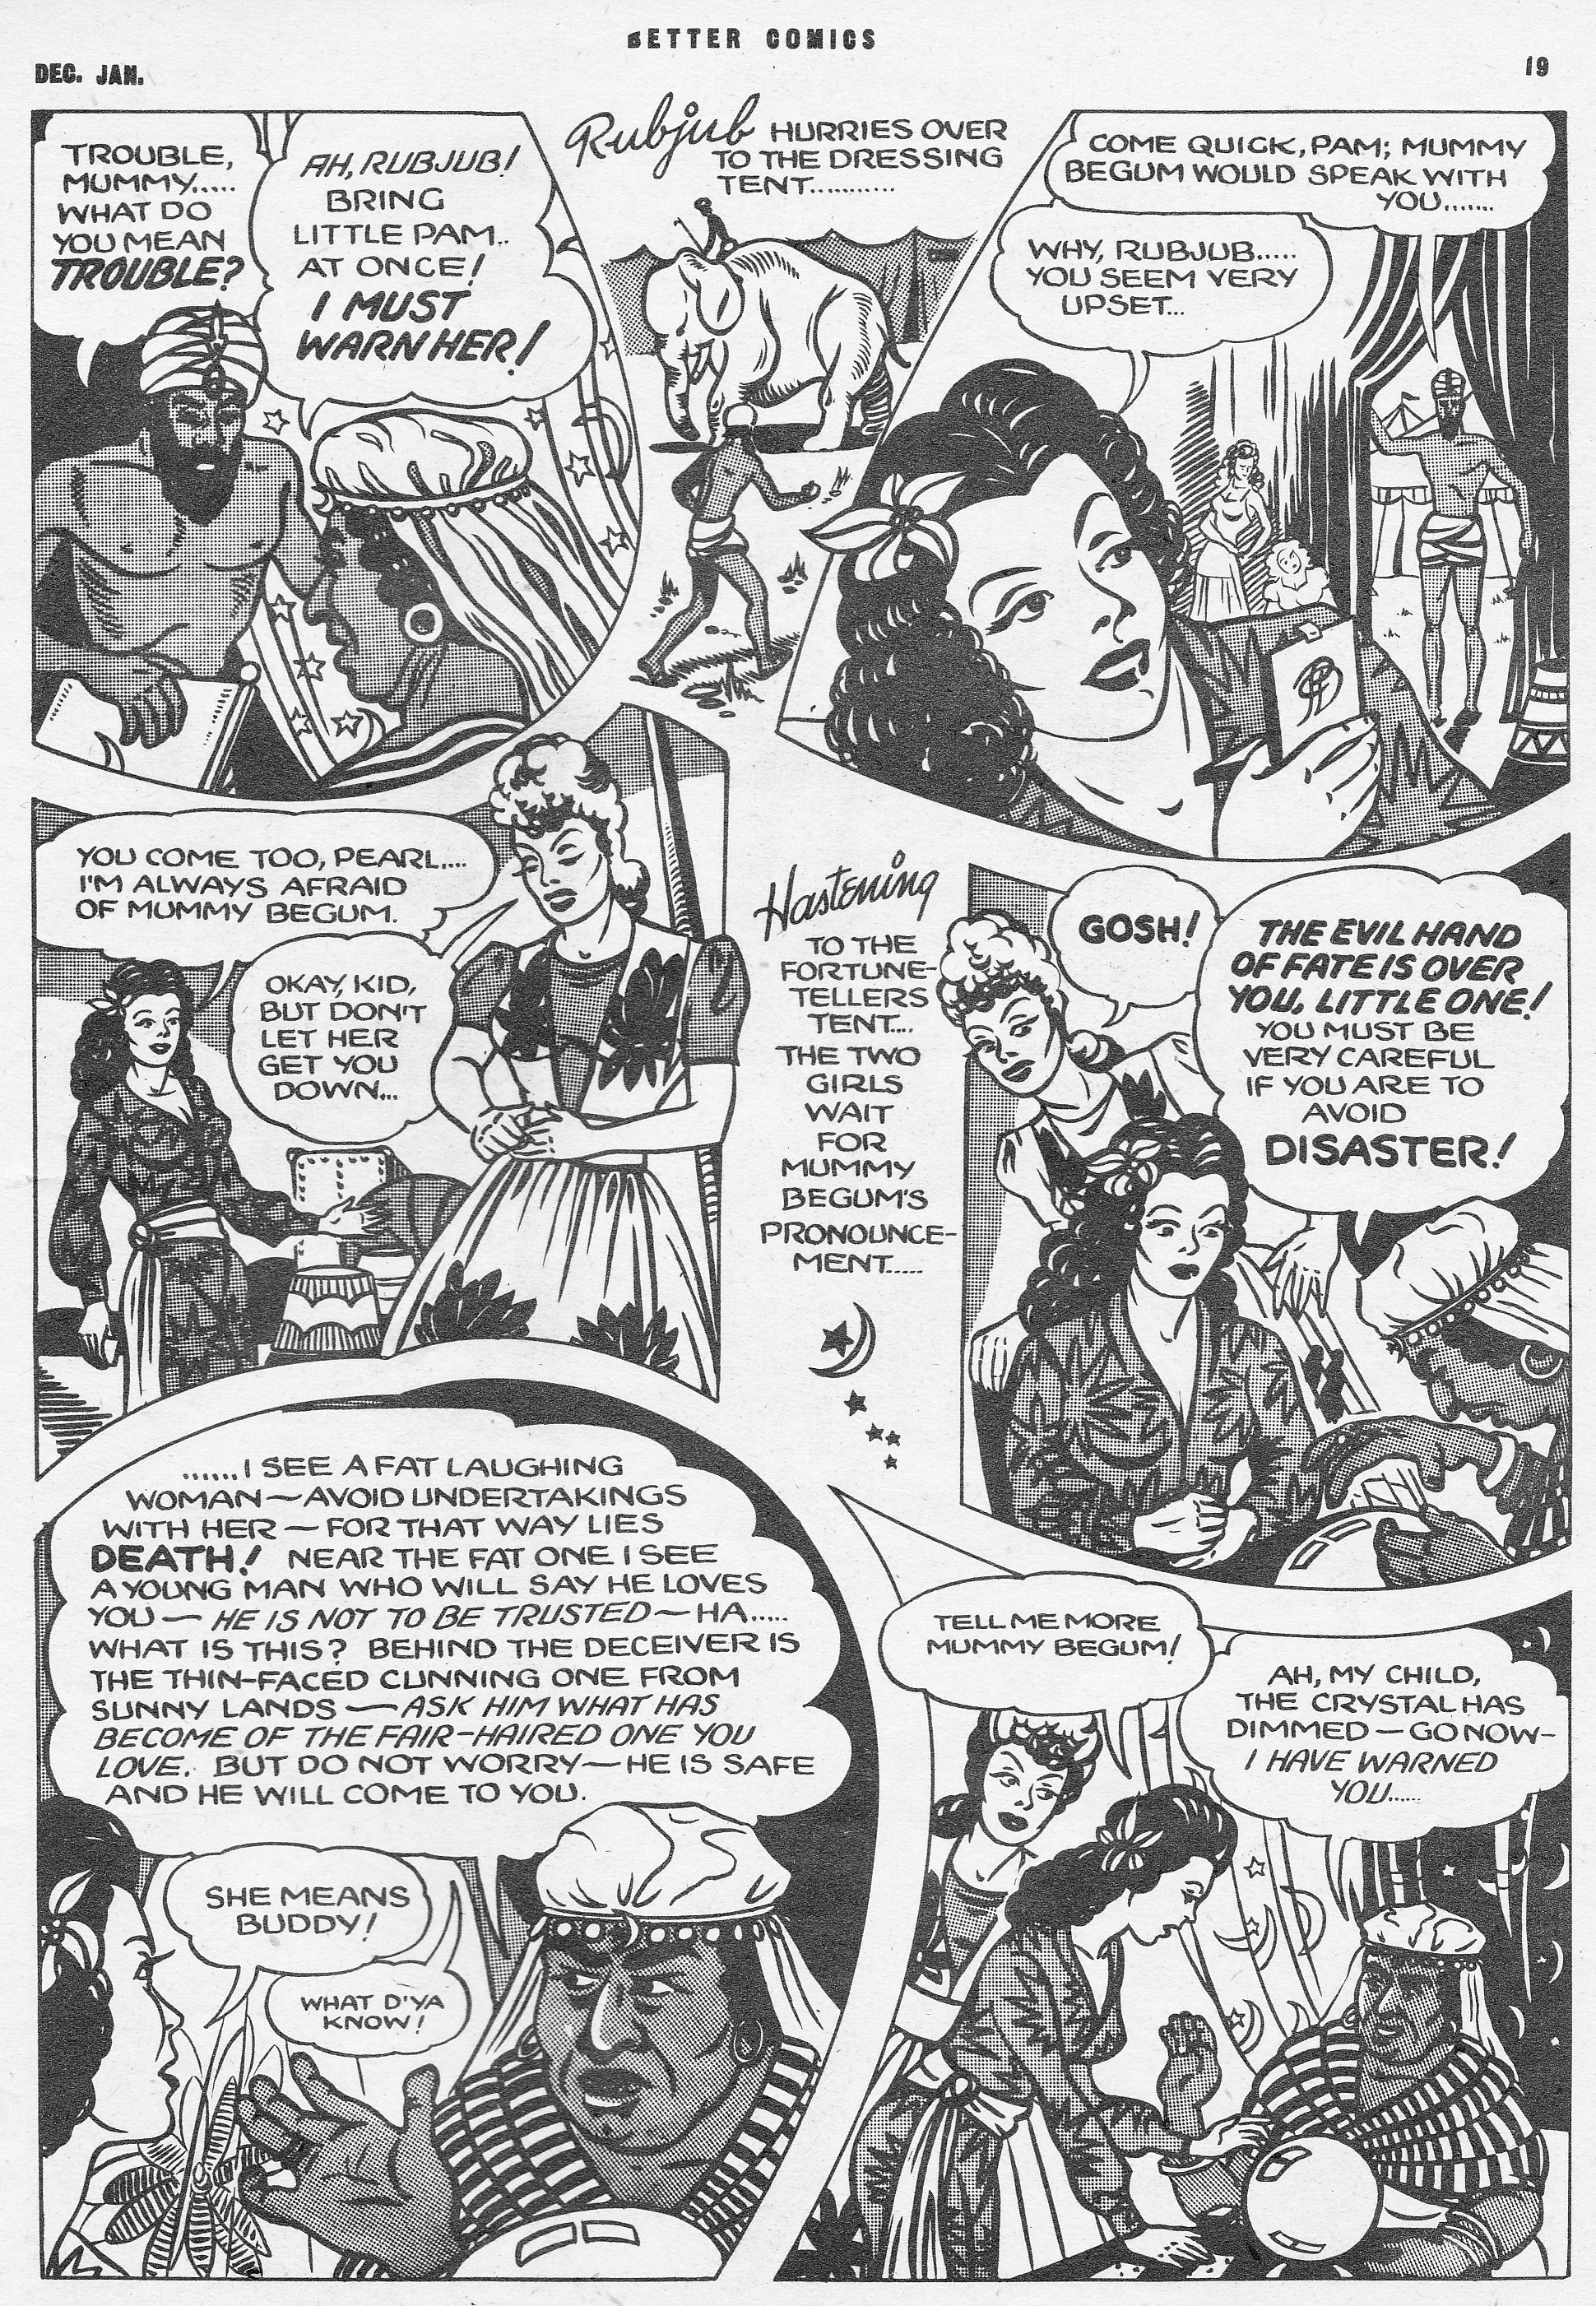 C:\Users\Robert\Documents\CARTOONING ILLUSTRATION ANIMATION\IMAGE CARTOON\IMAGE CARTOON C\CIRCUS GIRL, Better Comics, 3-7, 19.jpg